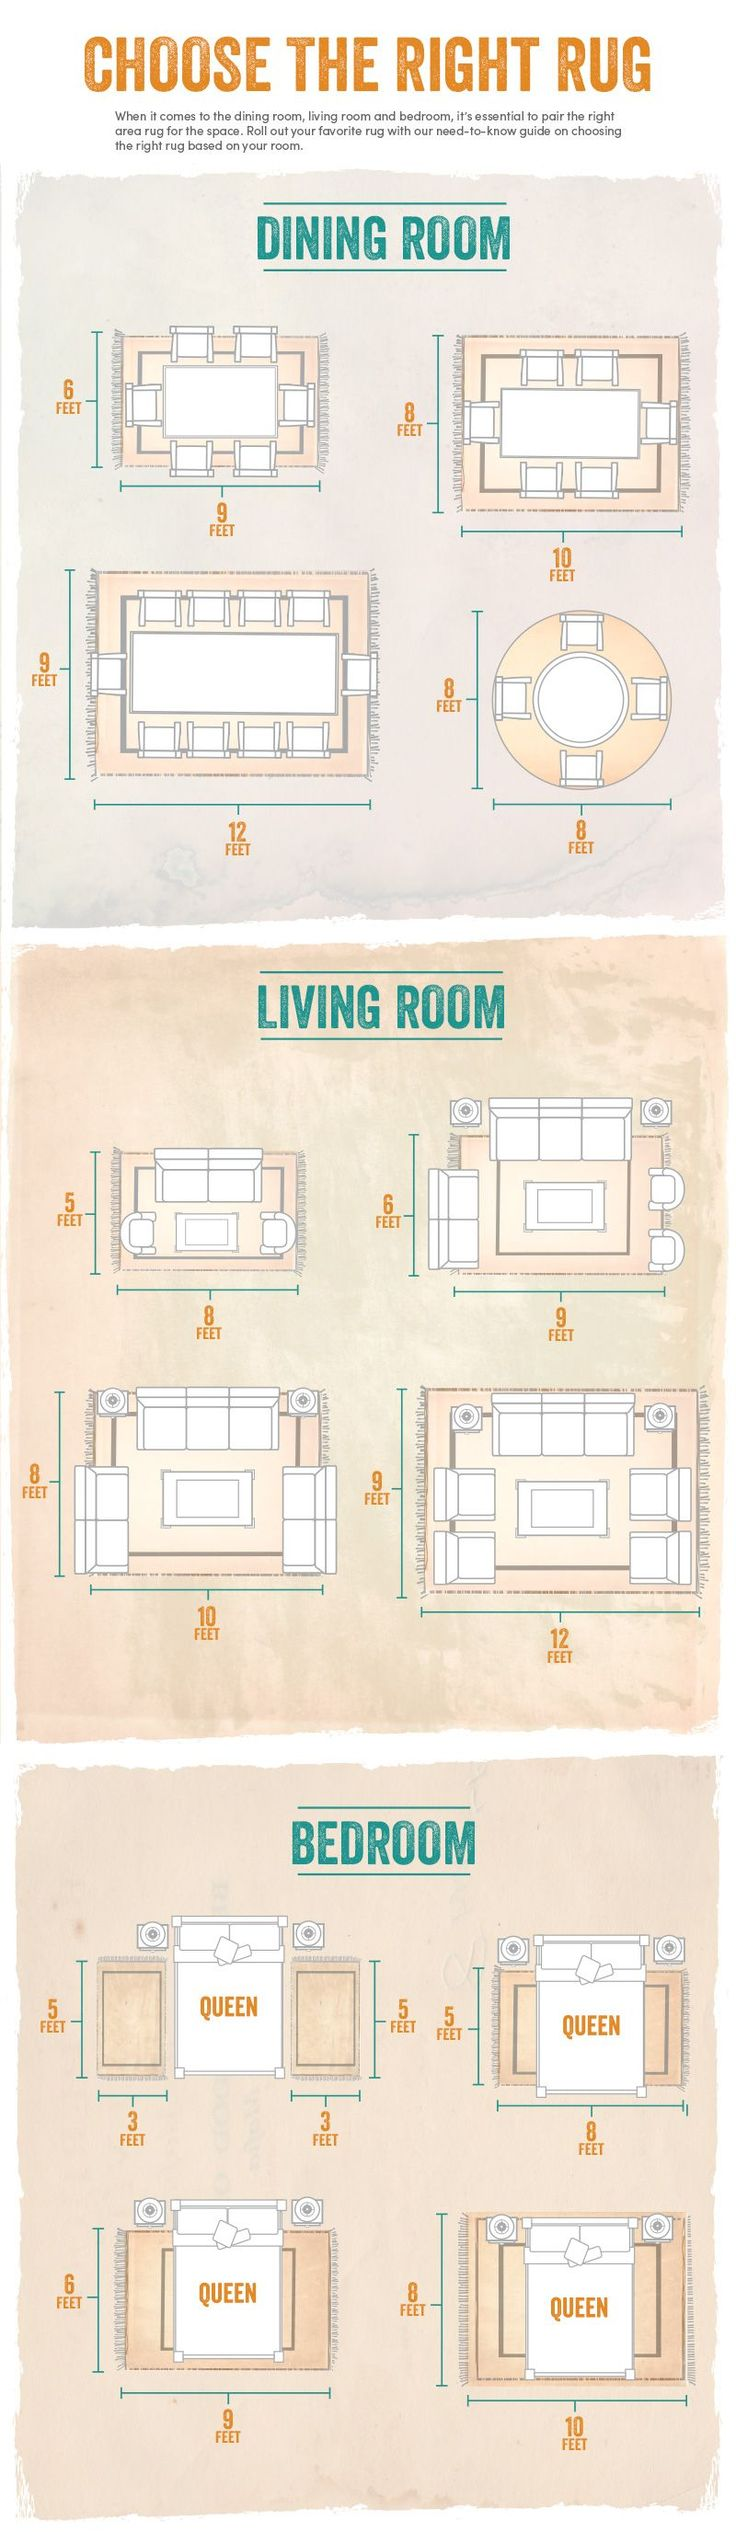 Living Room Furniture Placement Ideas best 10+ living room layouts ideas on pinterest | living room